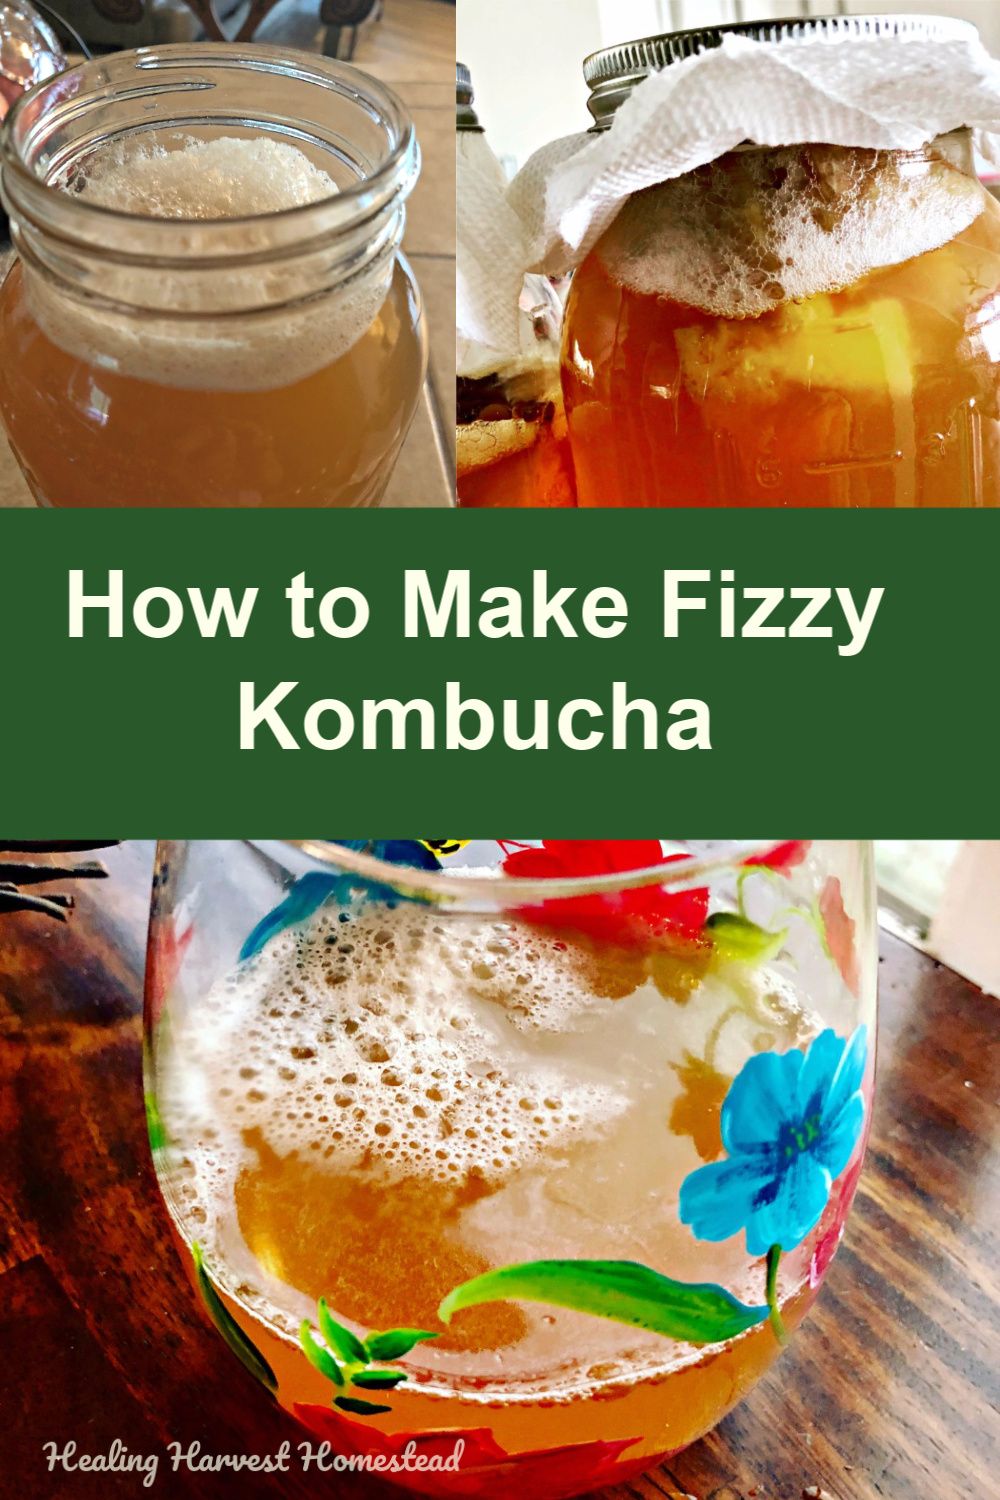 Find out how to make your homemade kombucha super fizzy and delicious every time! This healthy and natural soda substitute is full of probiotics, and can be is flat. This article explains how to get that soda pop feeling in your healthy drink. Party in your mouth! #kombucha #howtomake #fizzy #naturalsoda #substitute #healthy #drink #carbonate #healingharvesthomestead